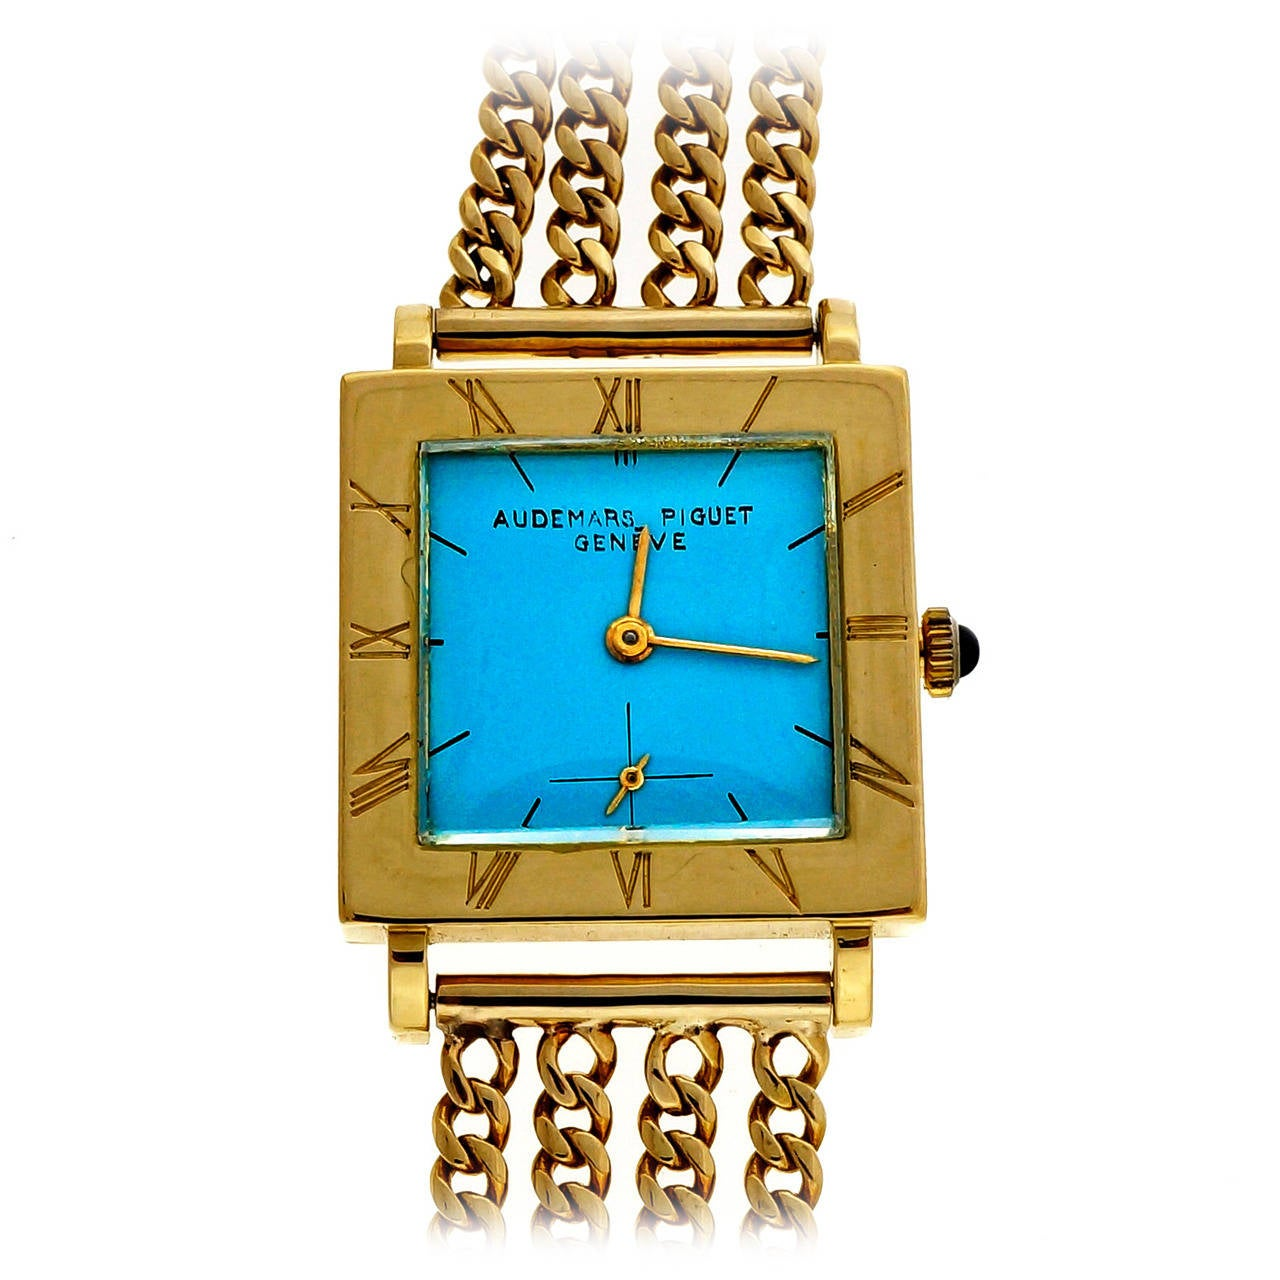 Audemars Piguet Lady's Yellow Gold Wristwatch with Custom-Colored Dial